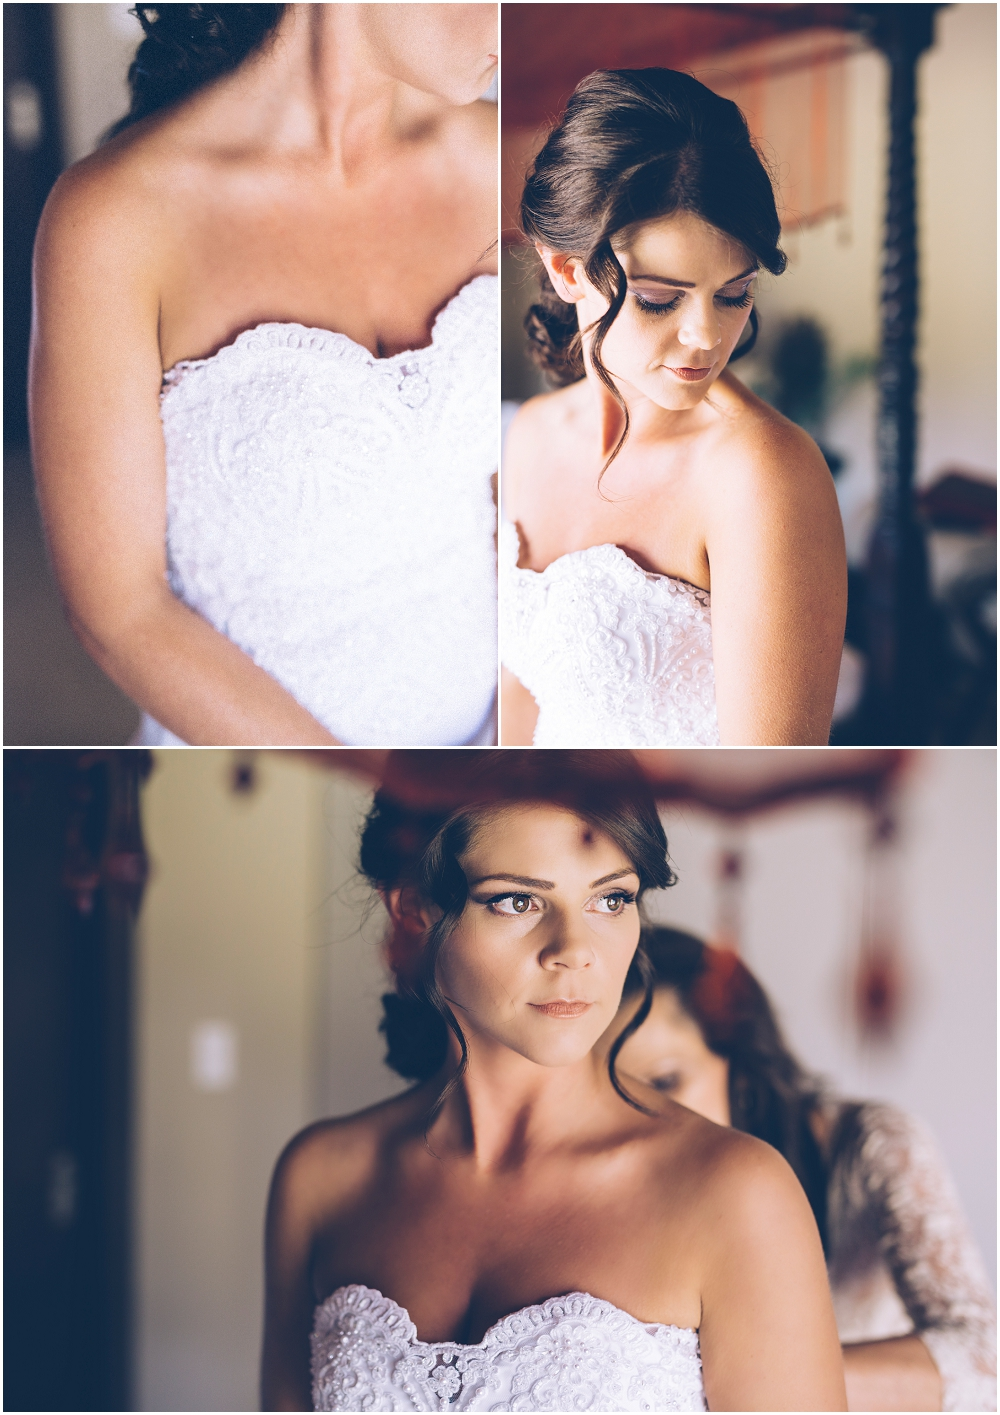 RonelKrugerPhotography_Kliplapa Wedding Photographer (24).jpg